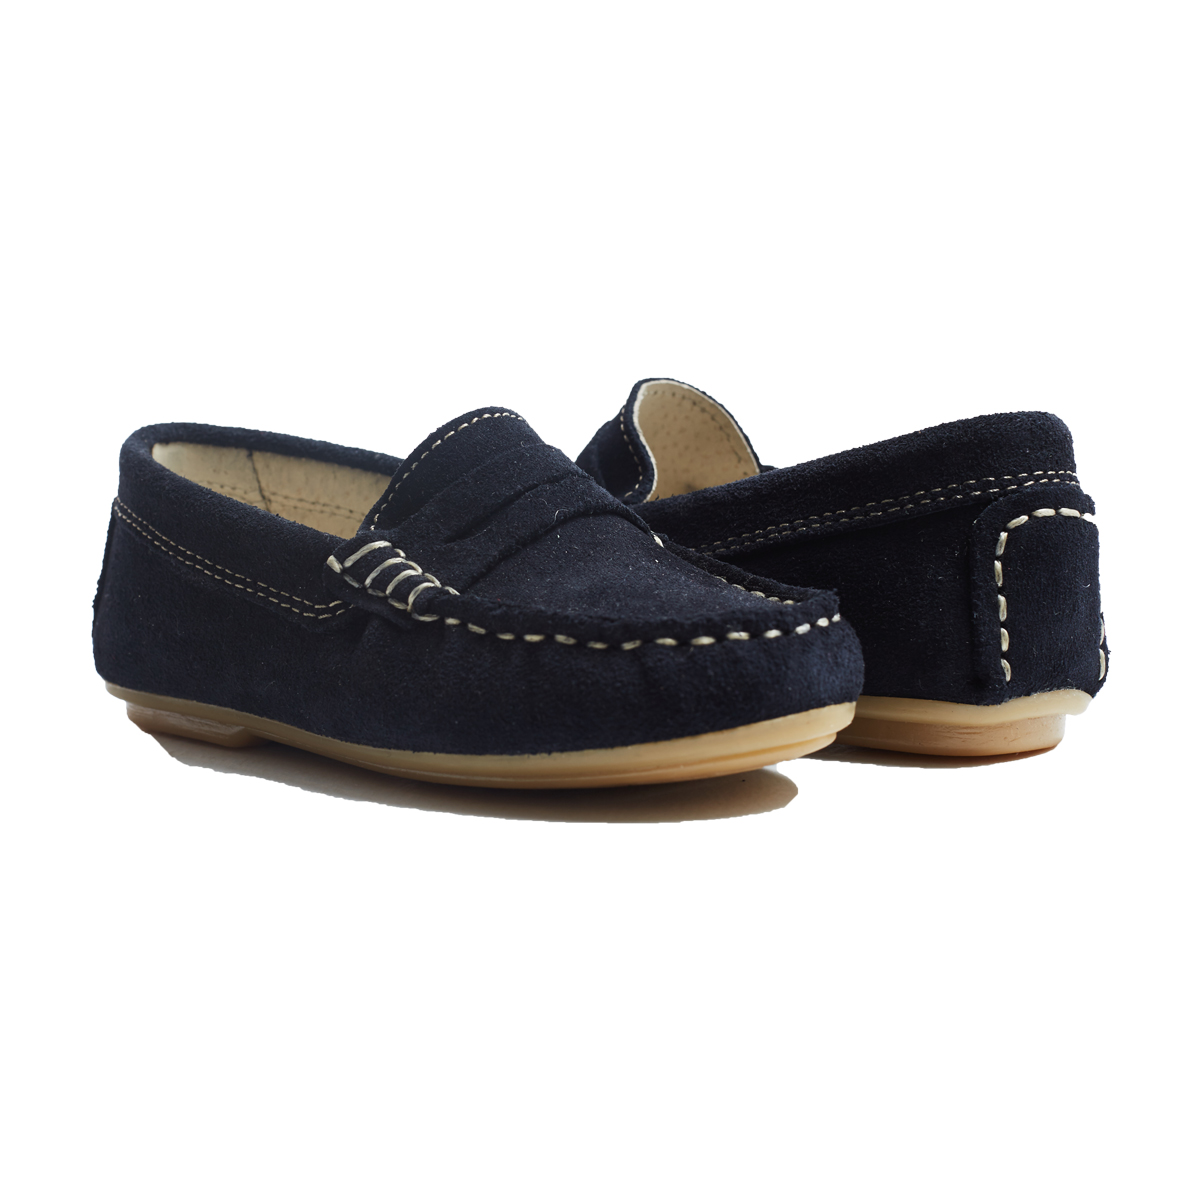 ChildrenChic Classic Suede Moccasin in Navy